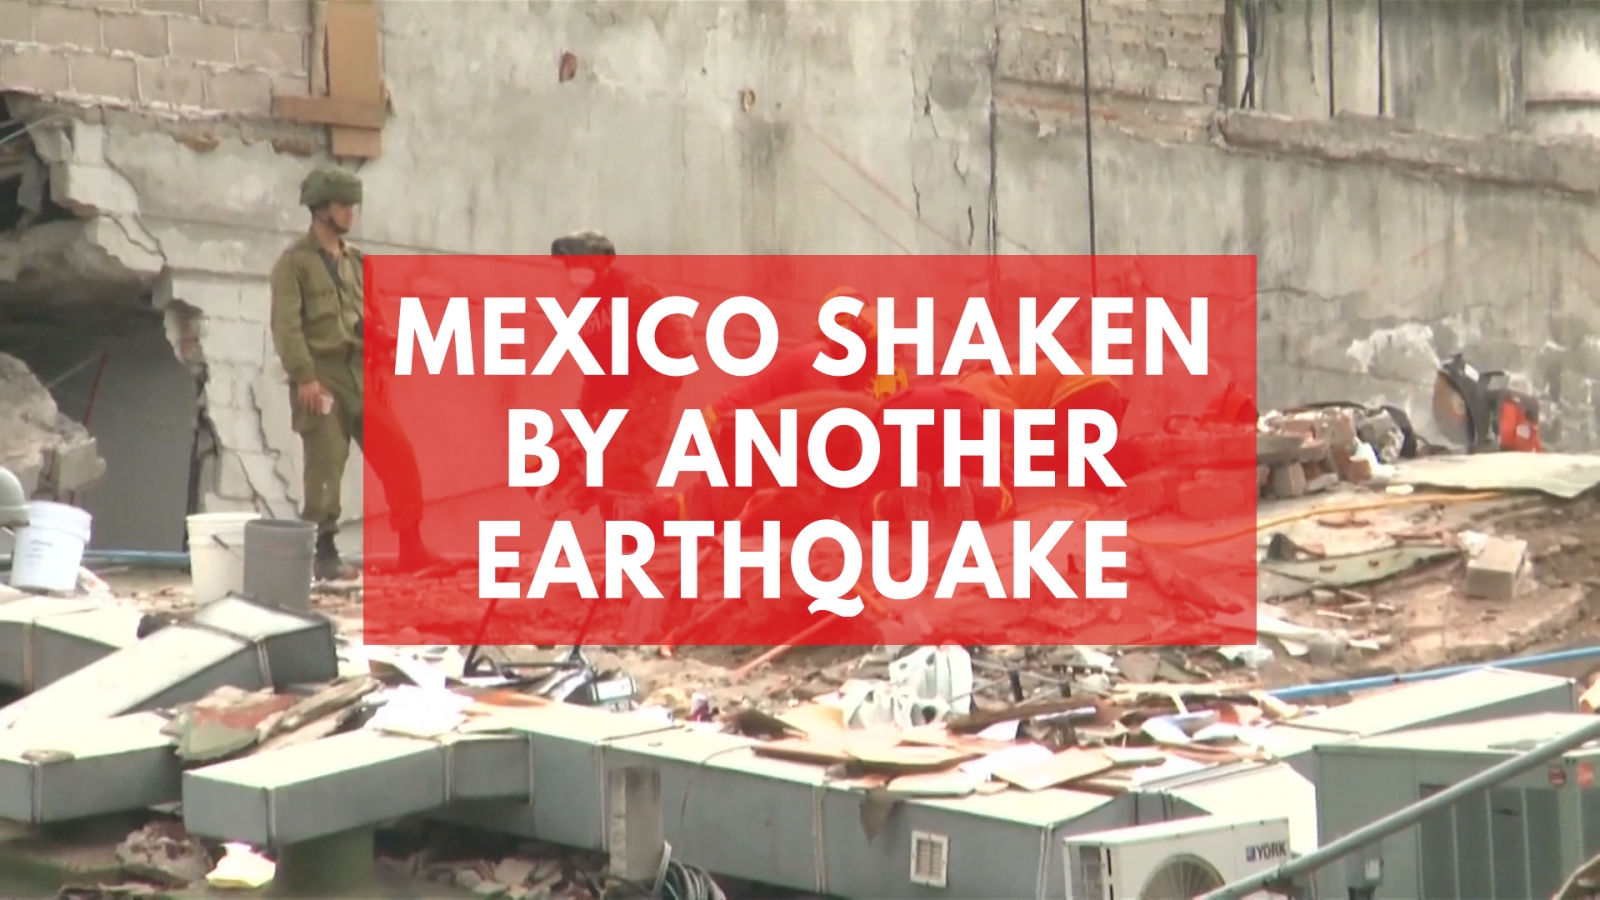 Mexico shaken by another earthquake